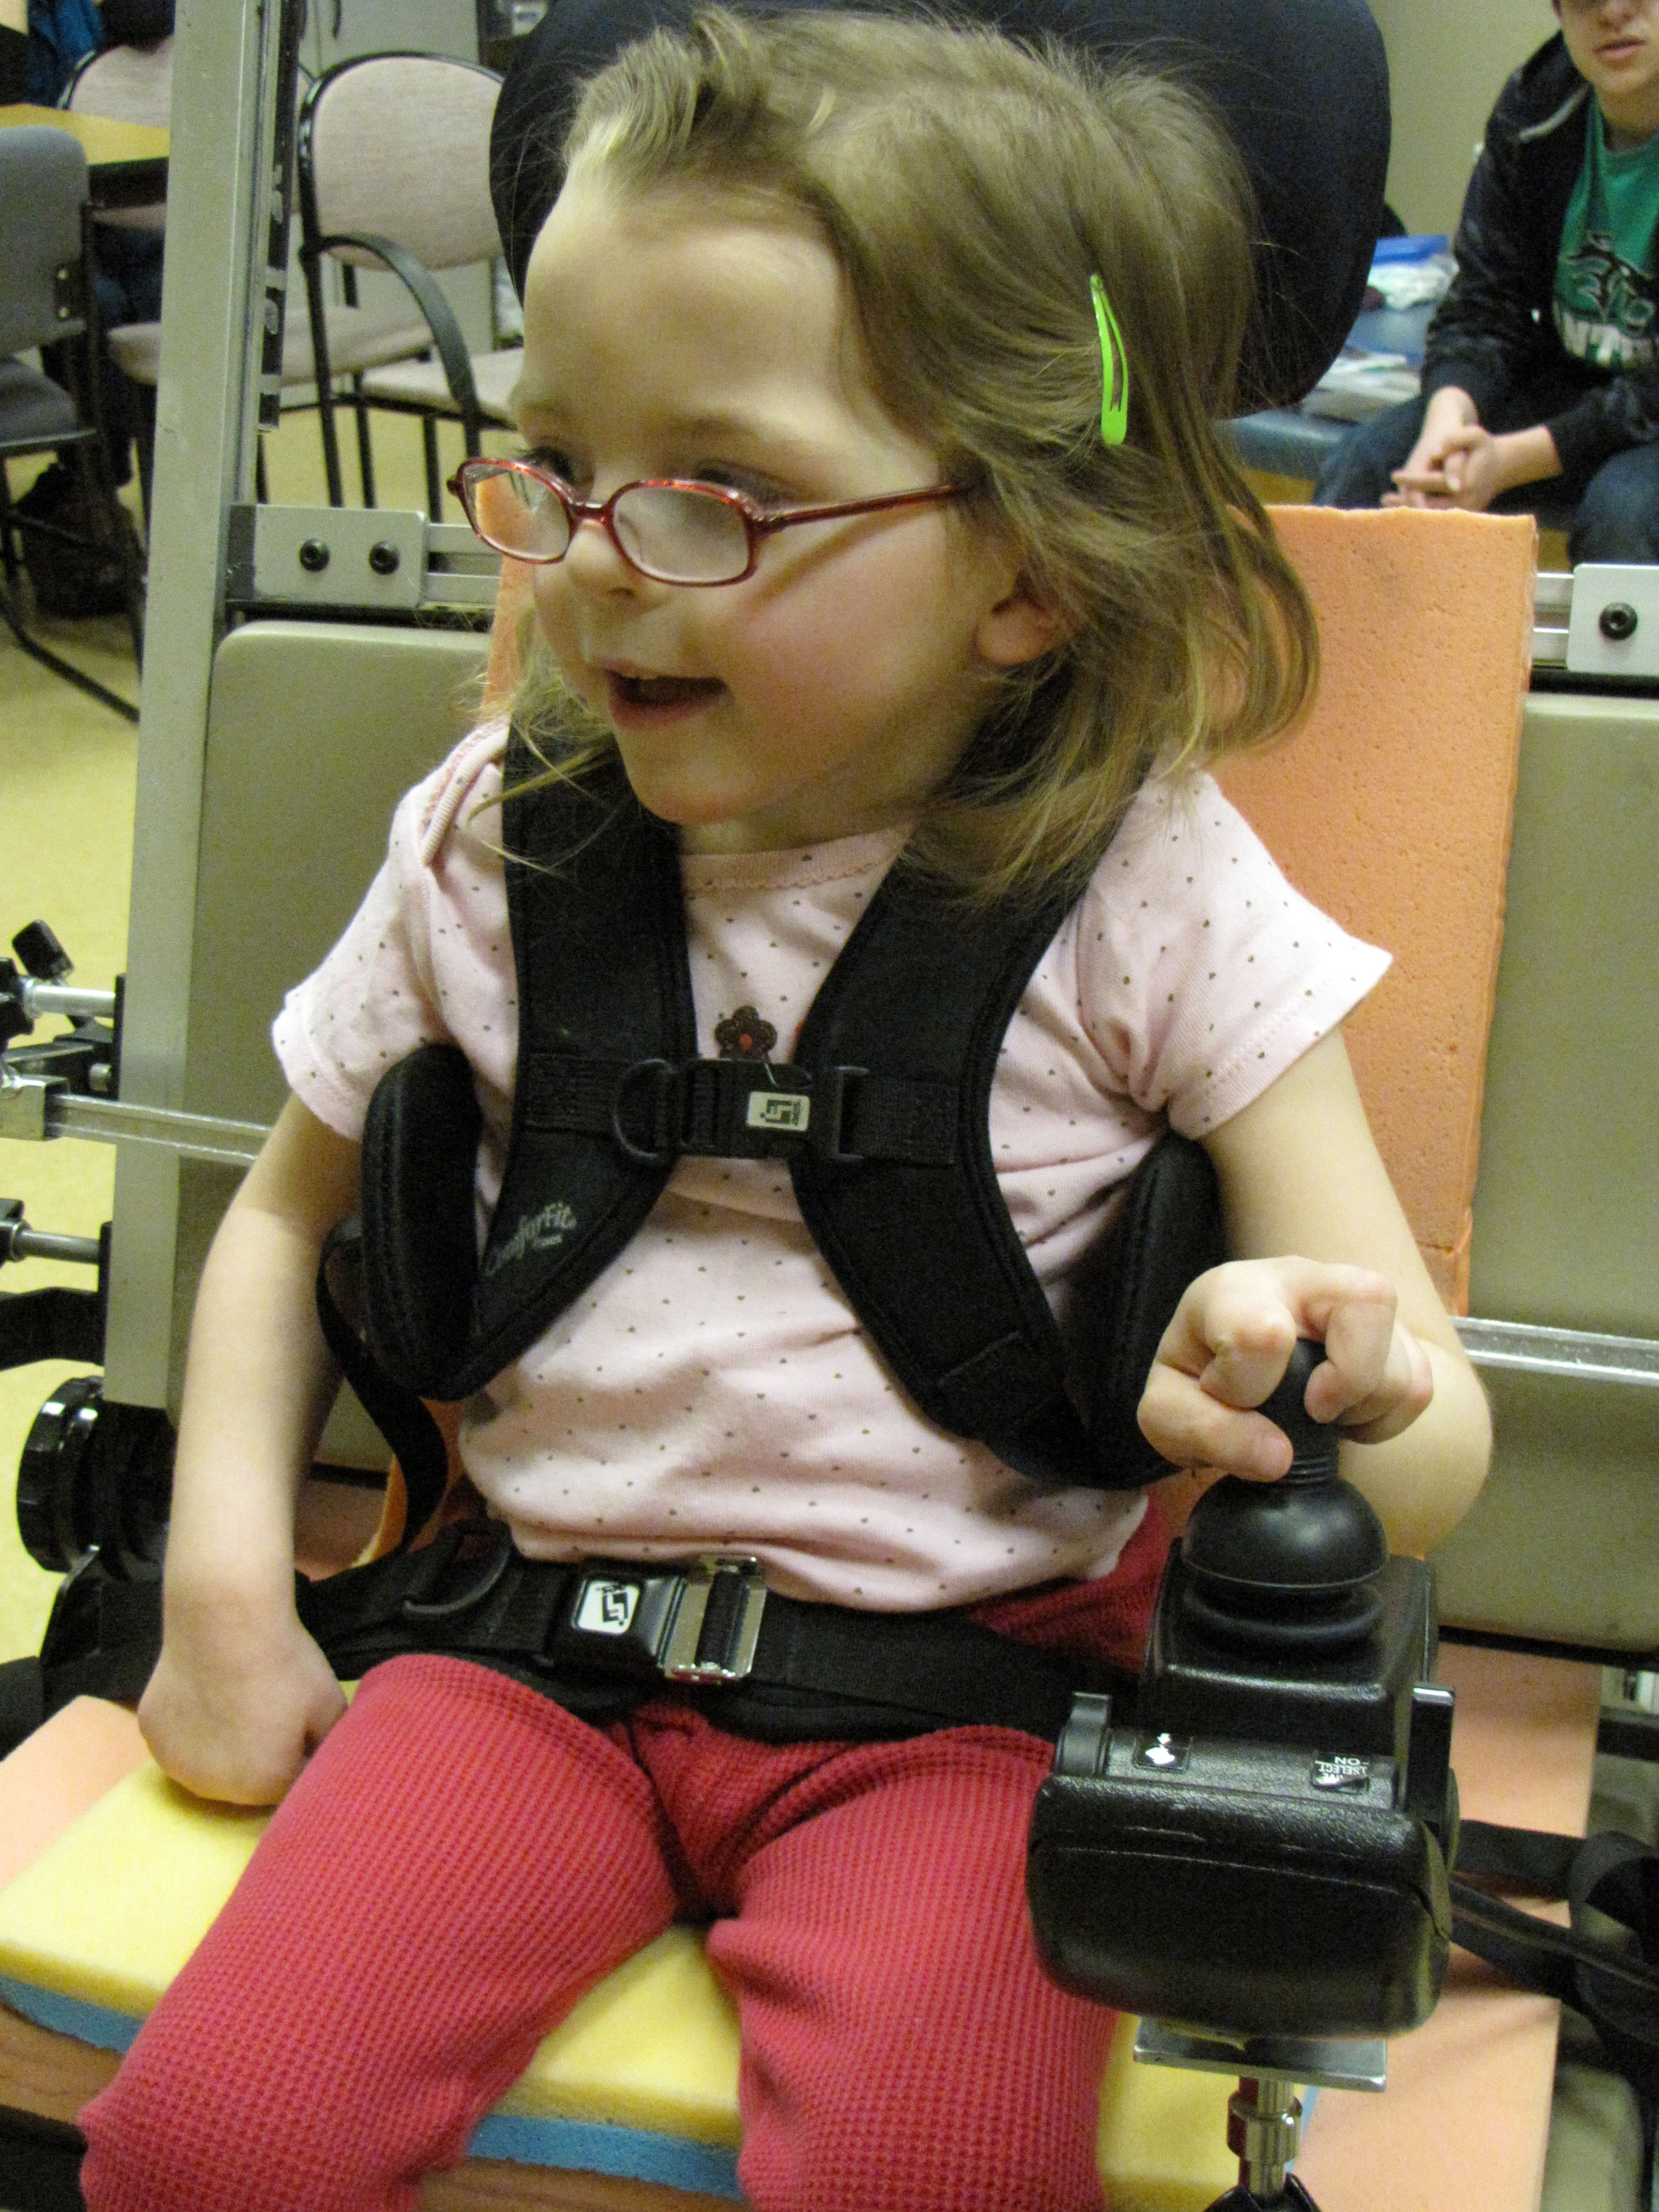 a young girl trials a new joystick for her power wheelchair